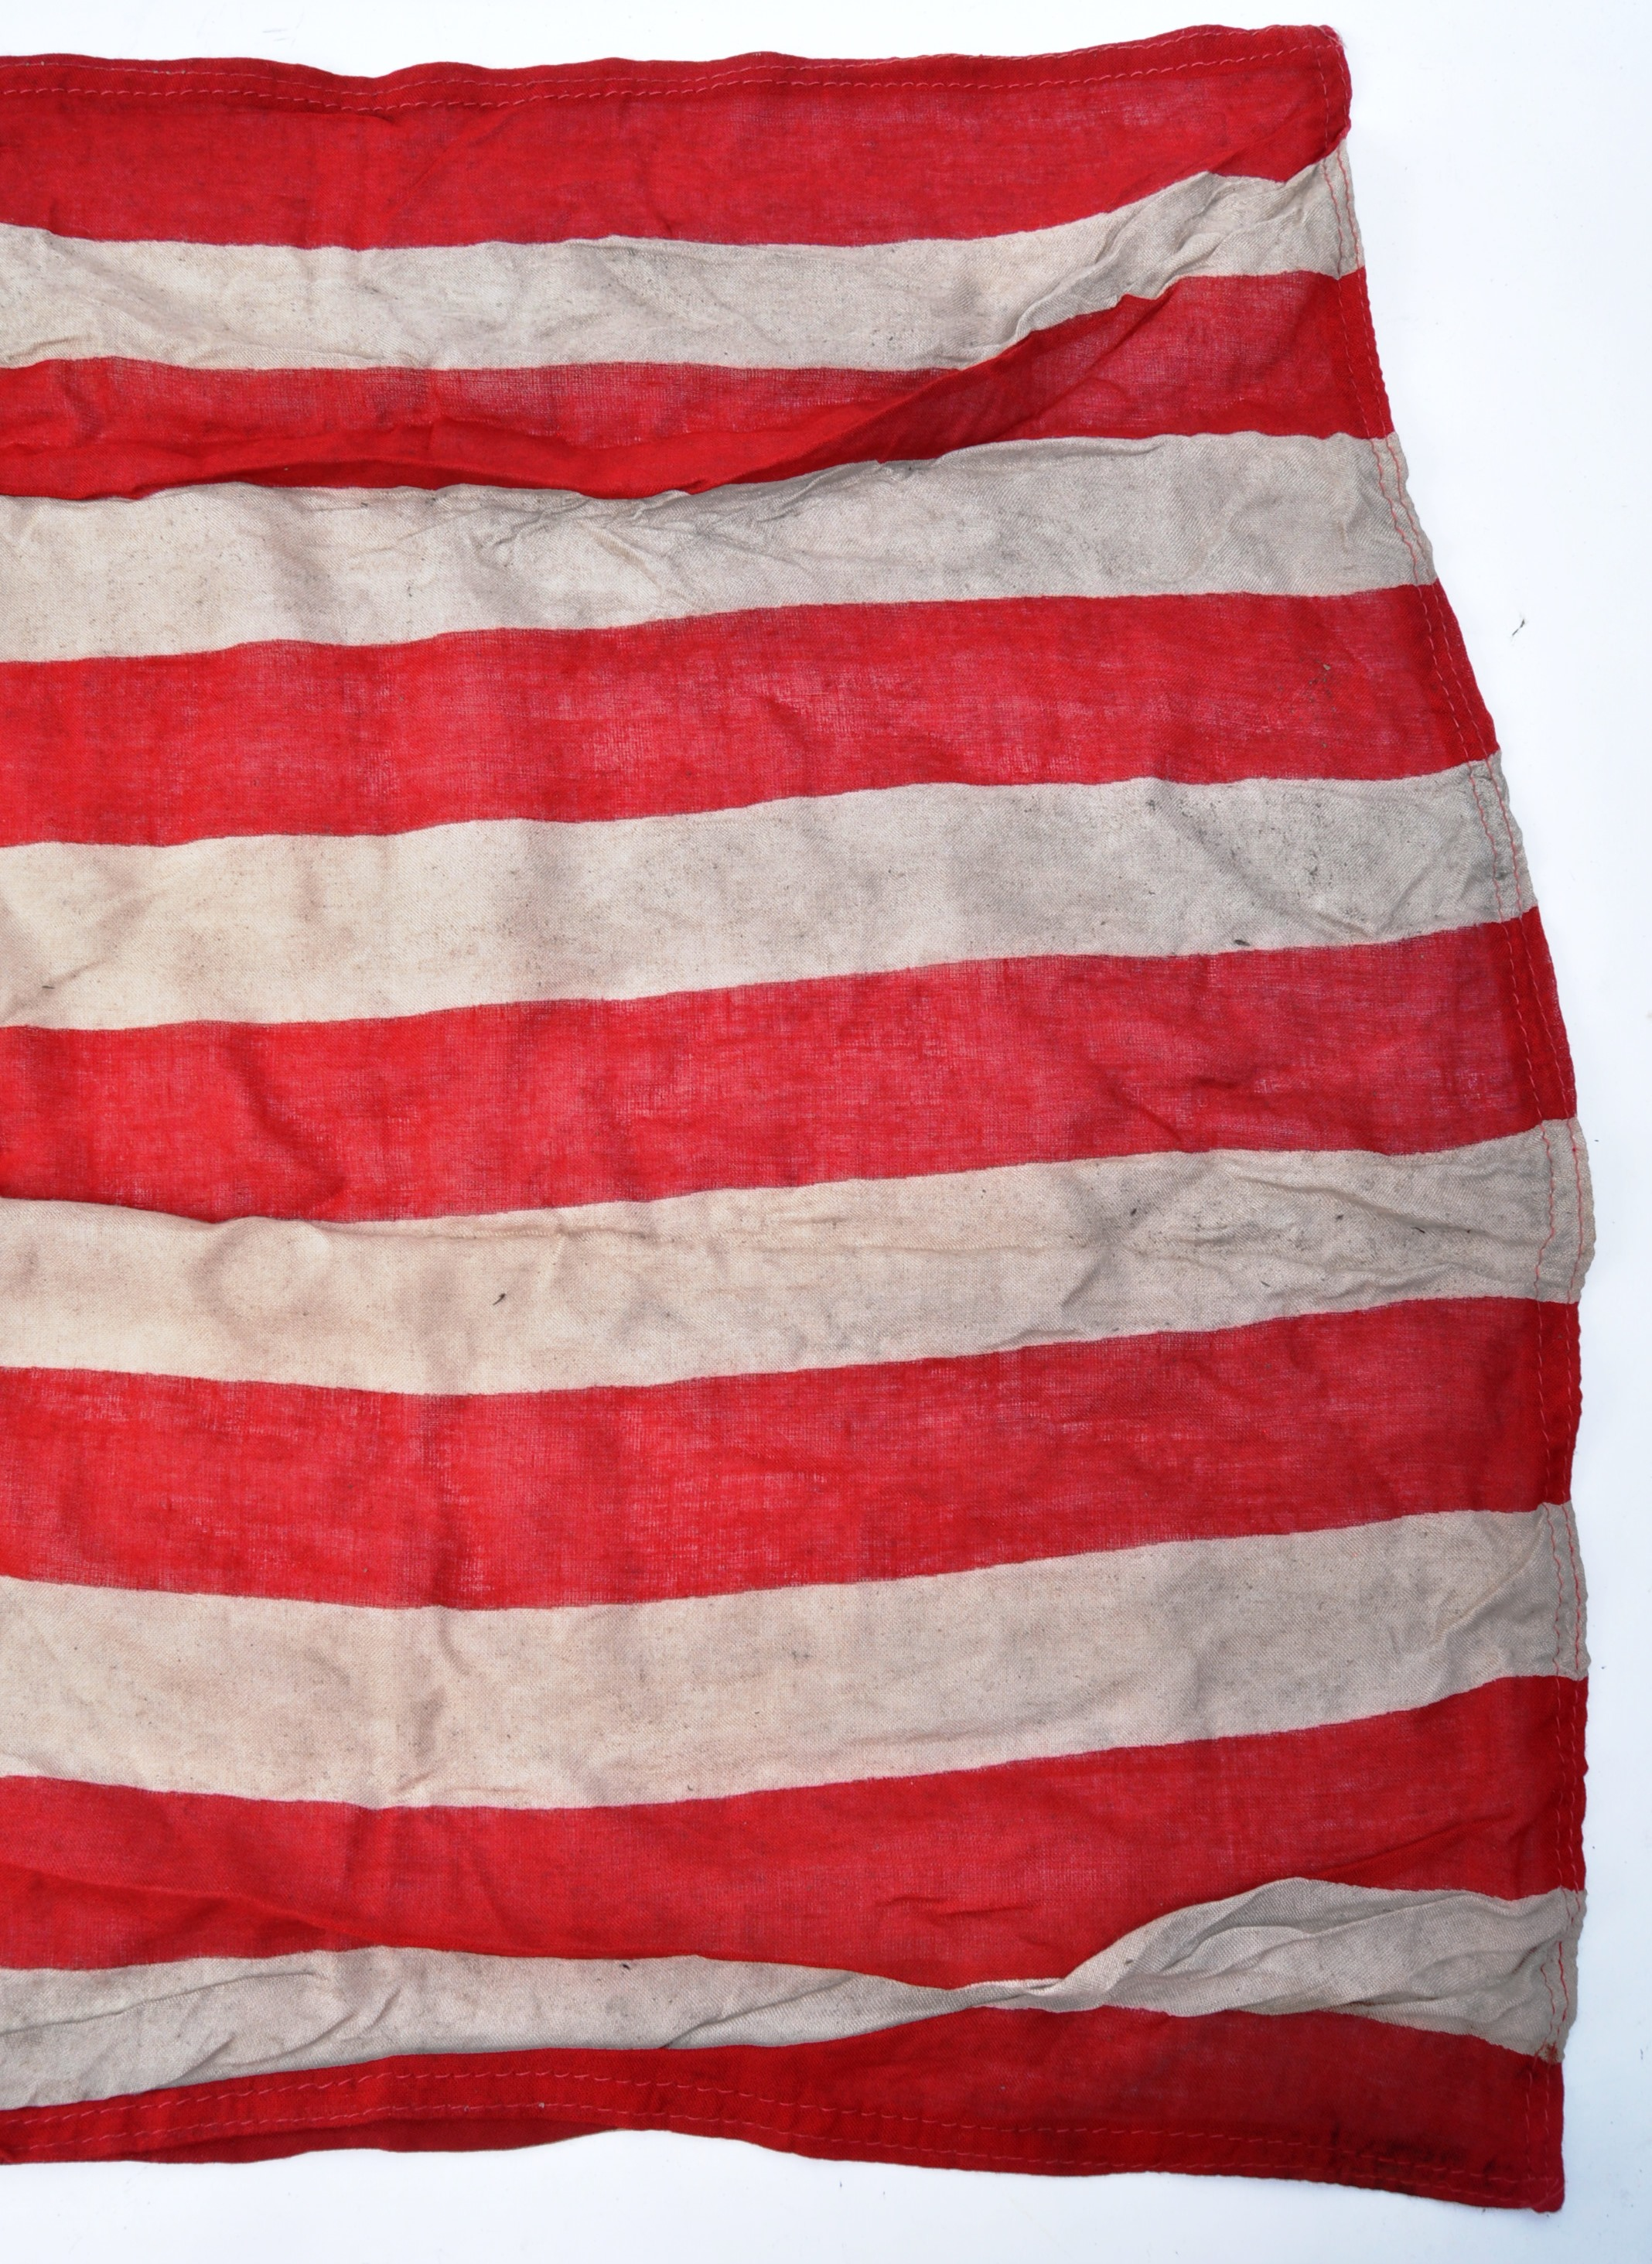 WWII SECOND WORLD WAR INTEREST FLAG - 1942 US ARMY DATED - Image 4 of 7